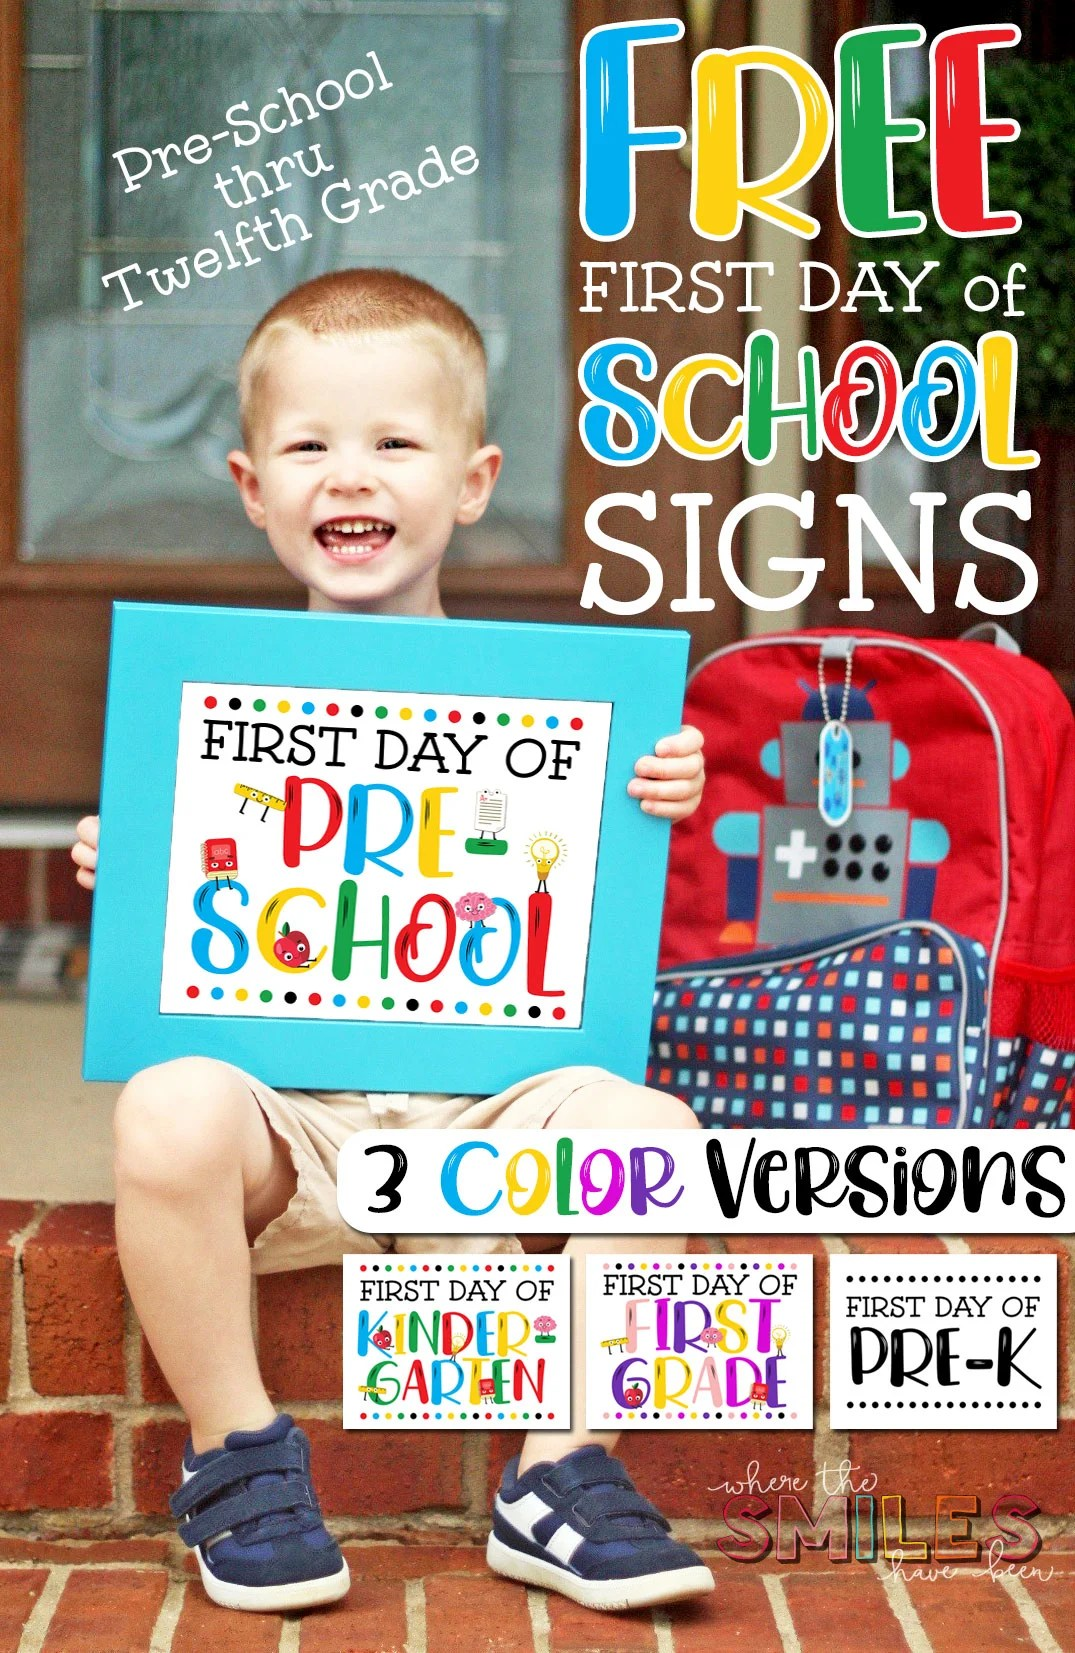 photo relating to 1st Day of School Sign Printable named Free of charge Initially Working day of University Signal Printables - 3 Shade Designs!